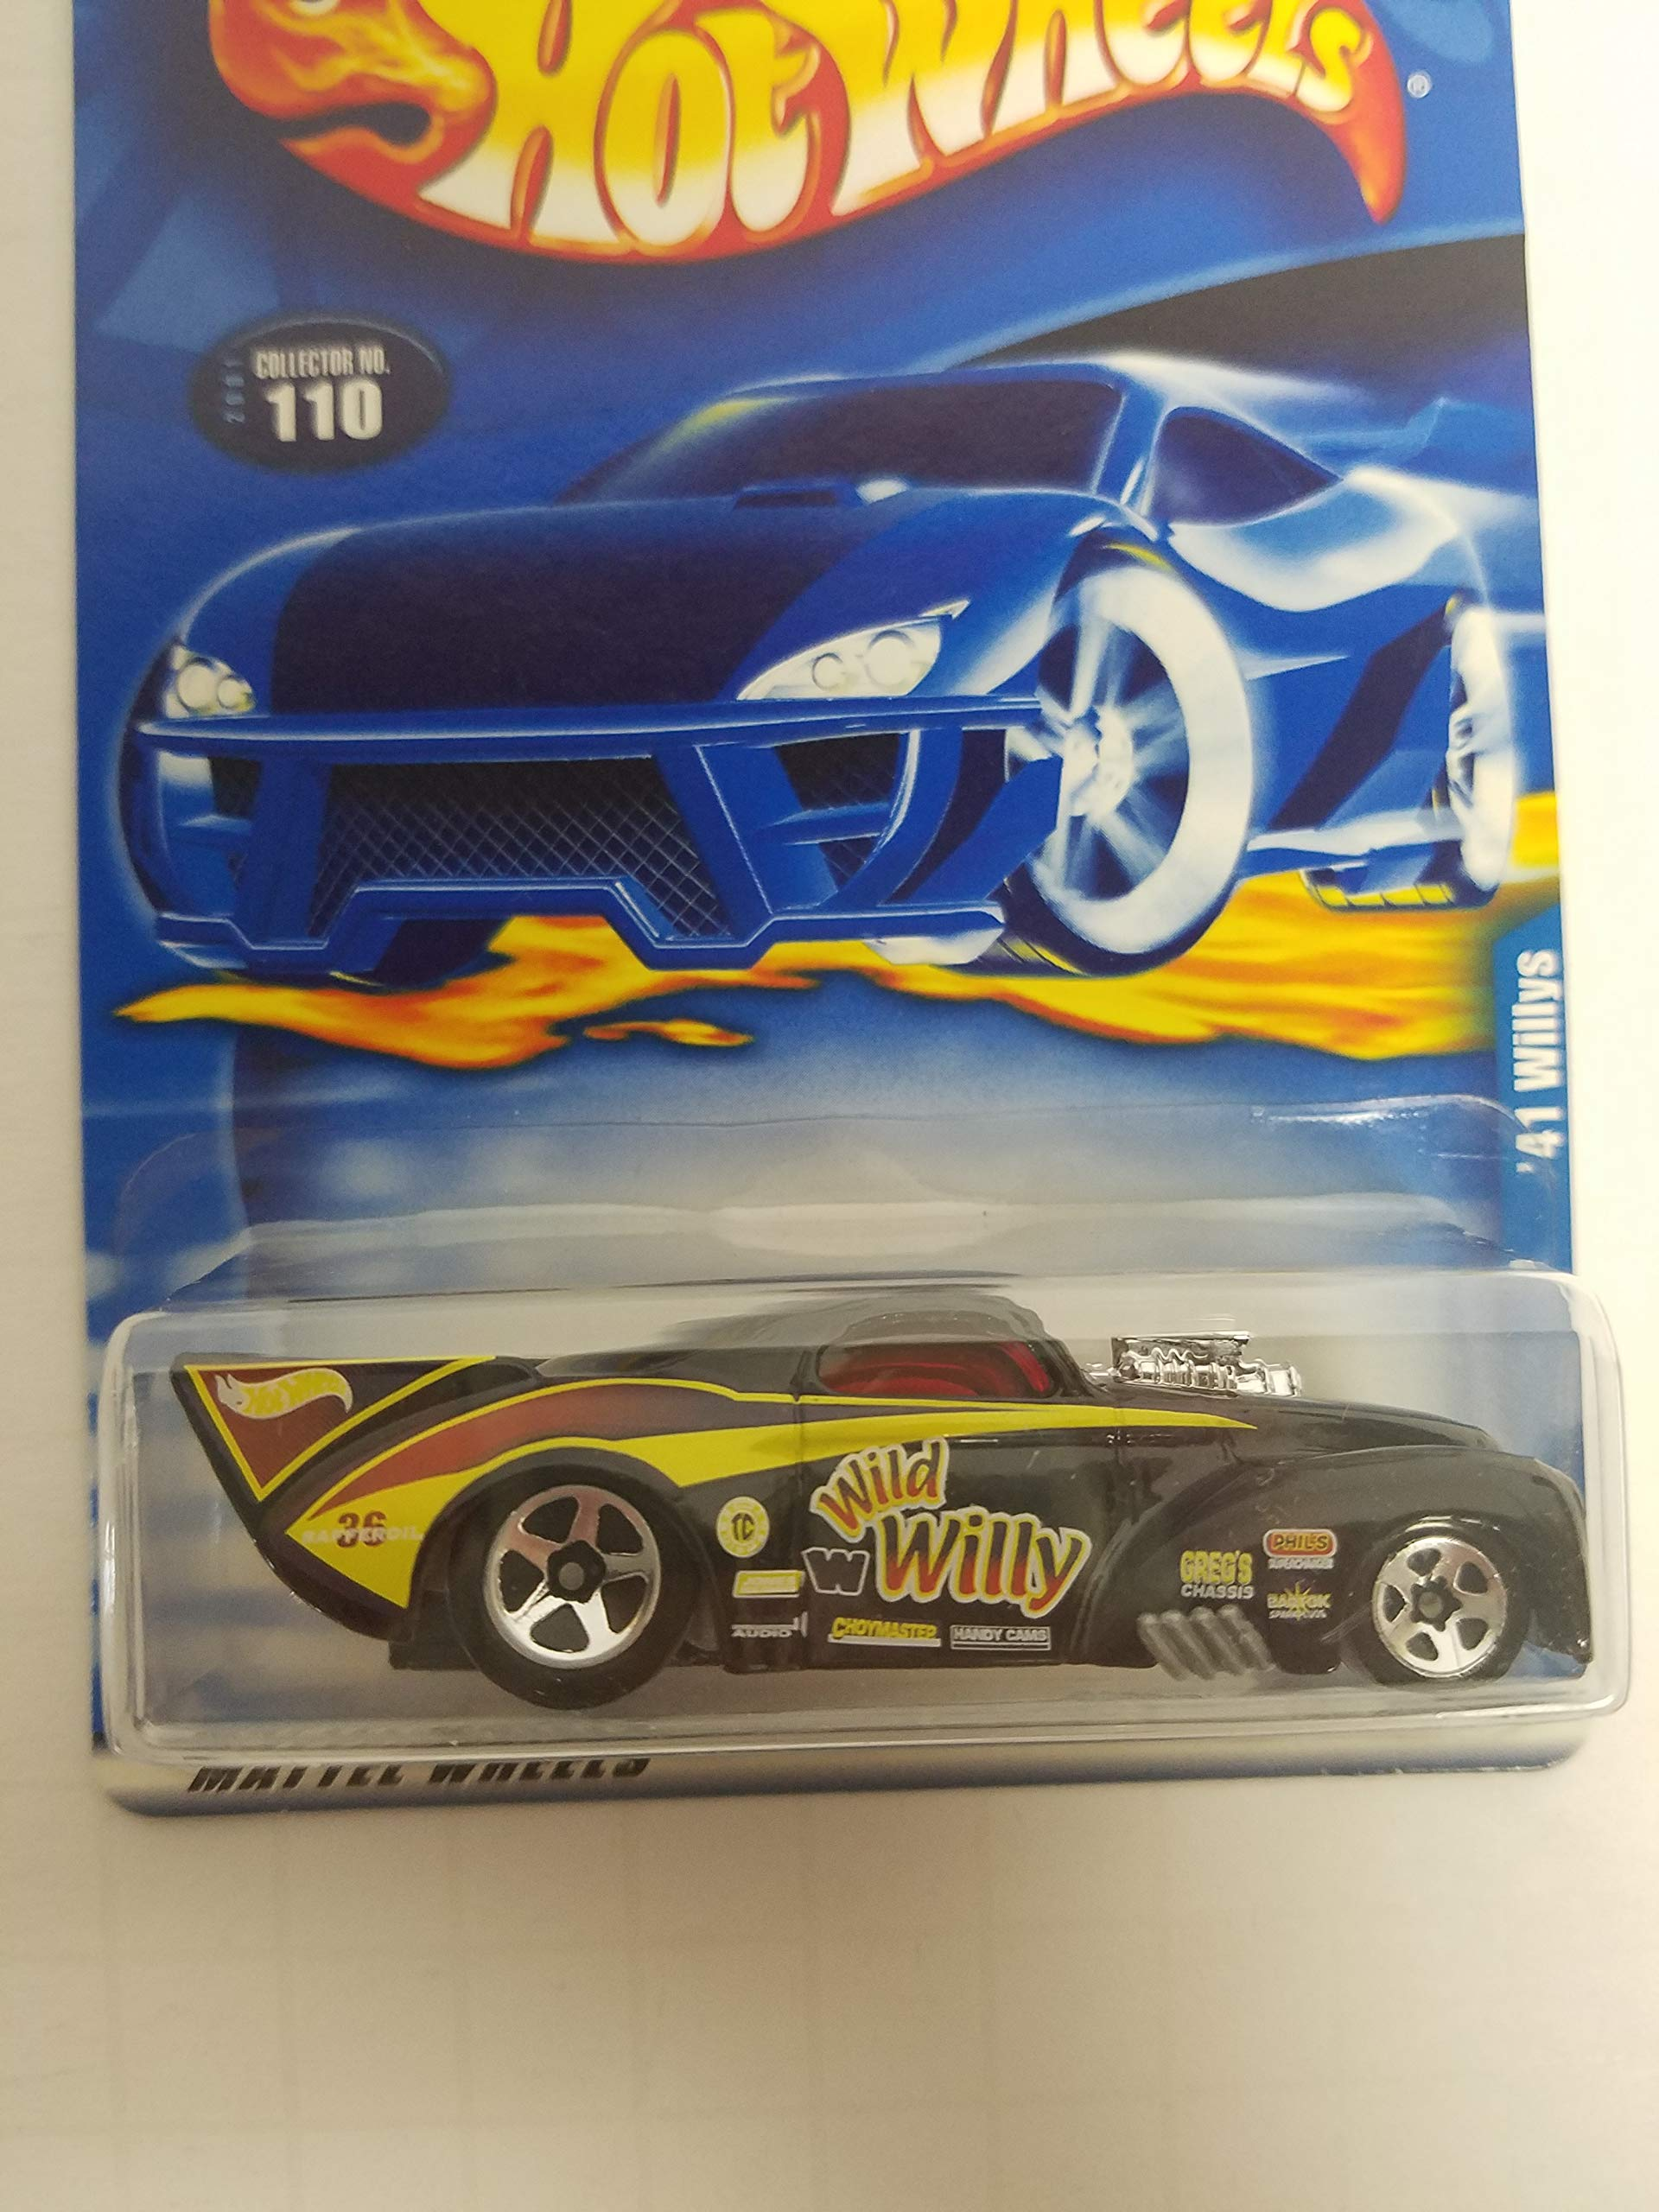 '41 Willys Hot Wheels 2001 diecast 1/64 scale car No. 110